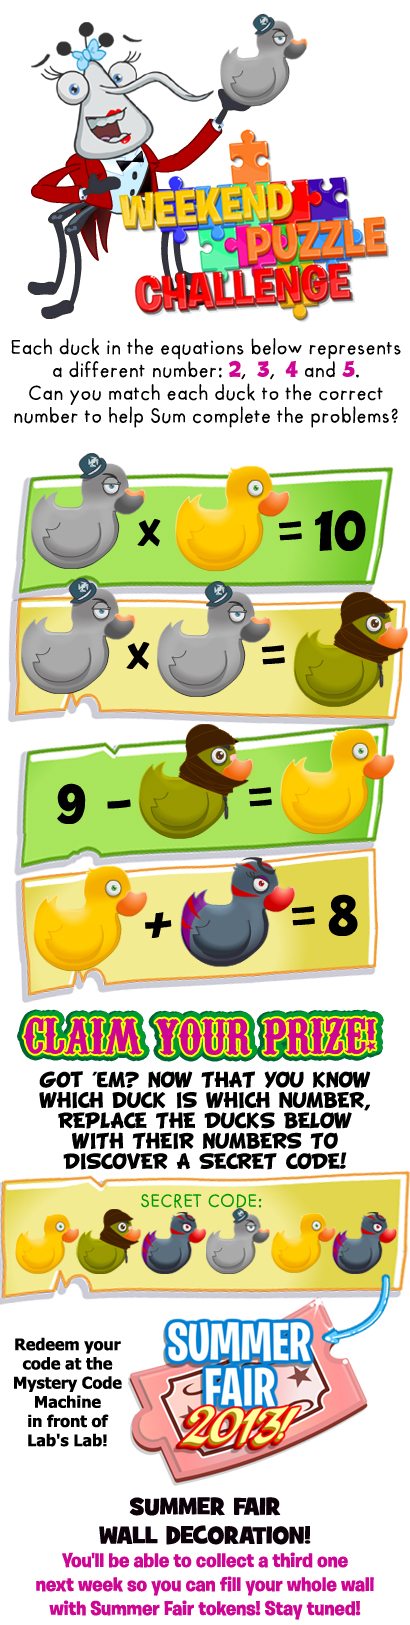 Weekend Puzzle Challenge Puzzle 2